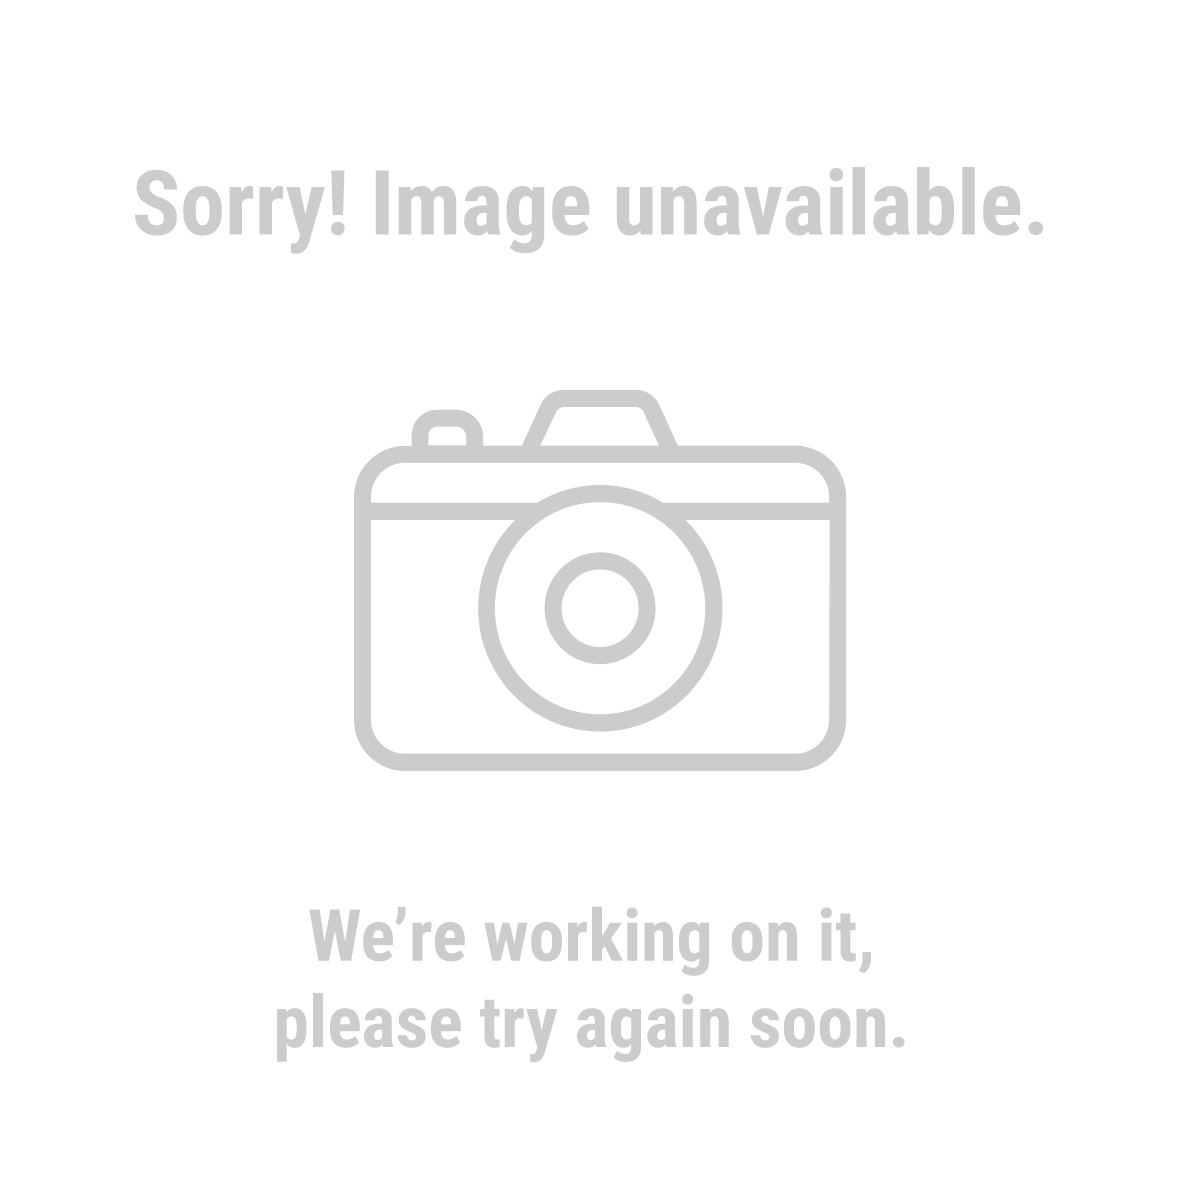 "Warrior 45431 4-1/2"" Cut-Off Wheel for Masonry, Pack of 10"